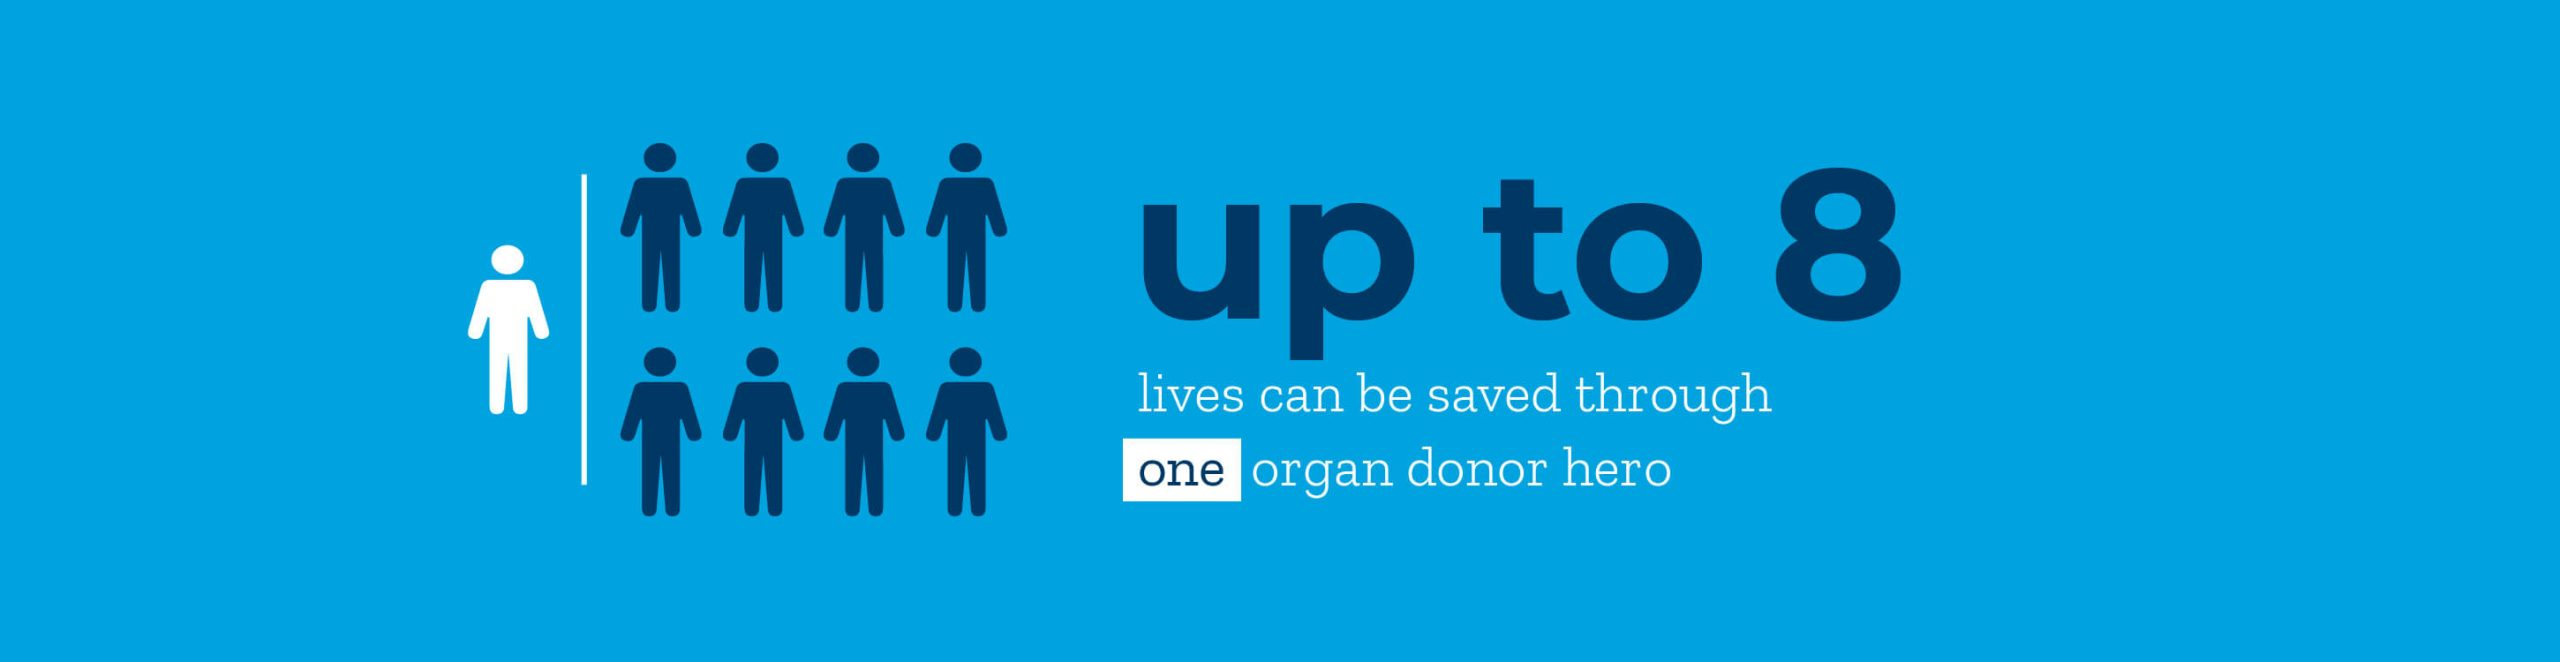 Infographic: up to 8 lives can be saved through one organ donor hero.